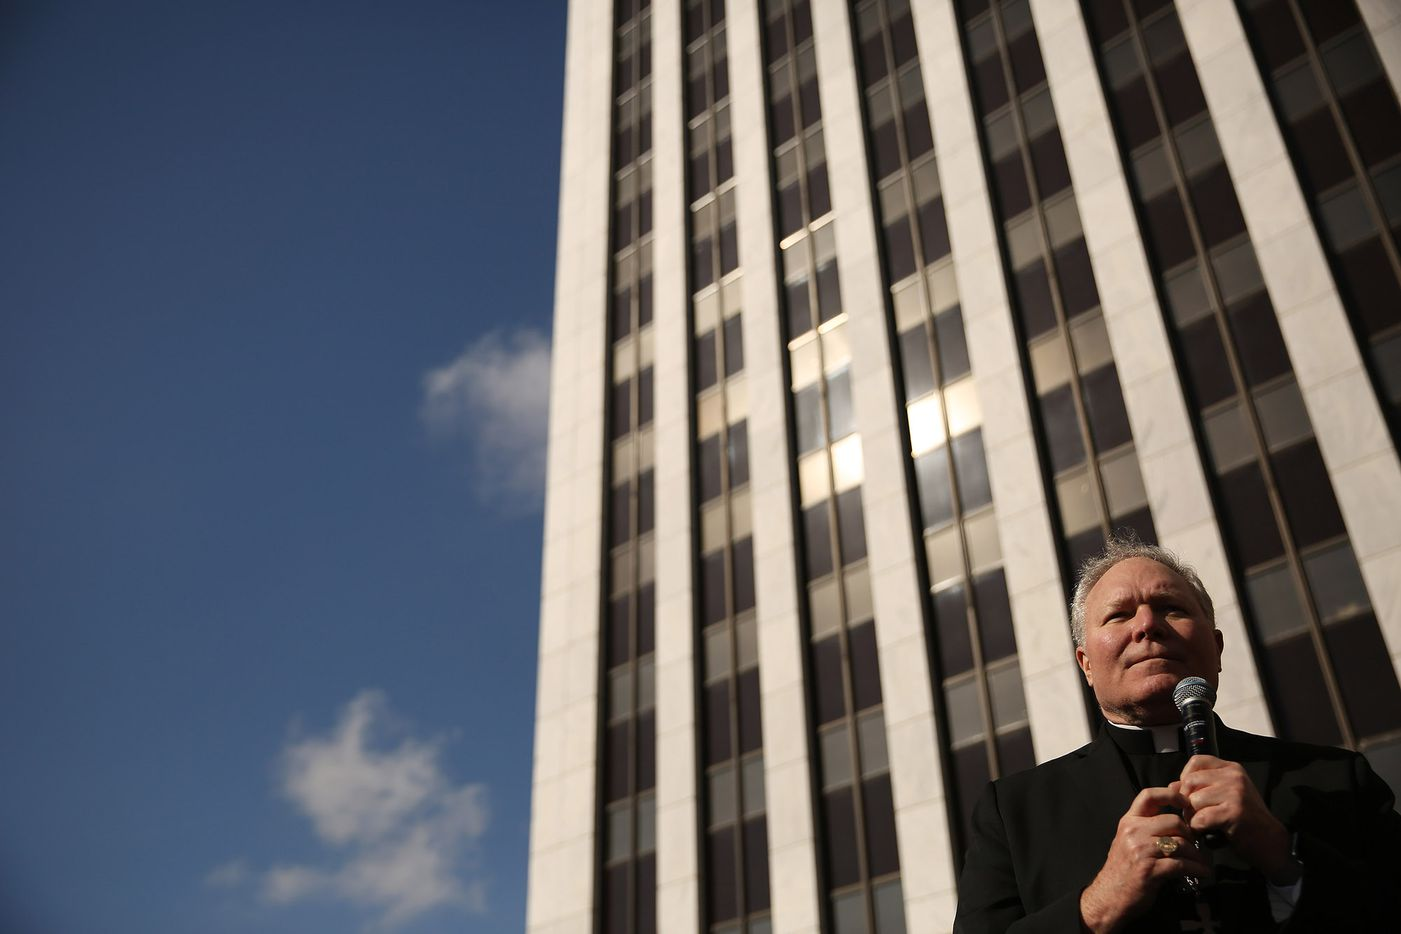 Bishop Edward J. Burns speaks ahead of anti-abortion activists in a parking lot adjacent to the Earle Cabell Federal Building at the rally portion of the North Texas March for Life in Dallas Saturday.